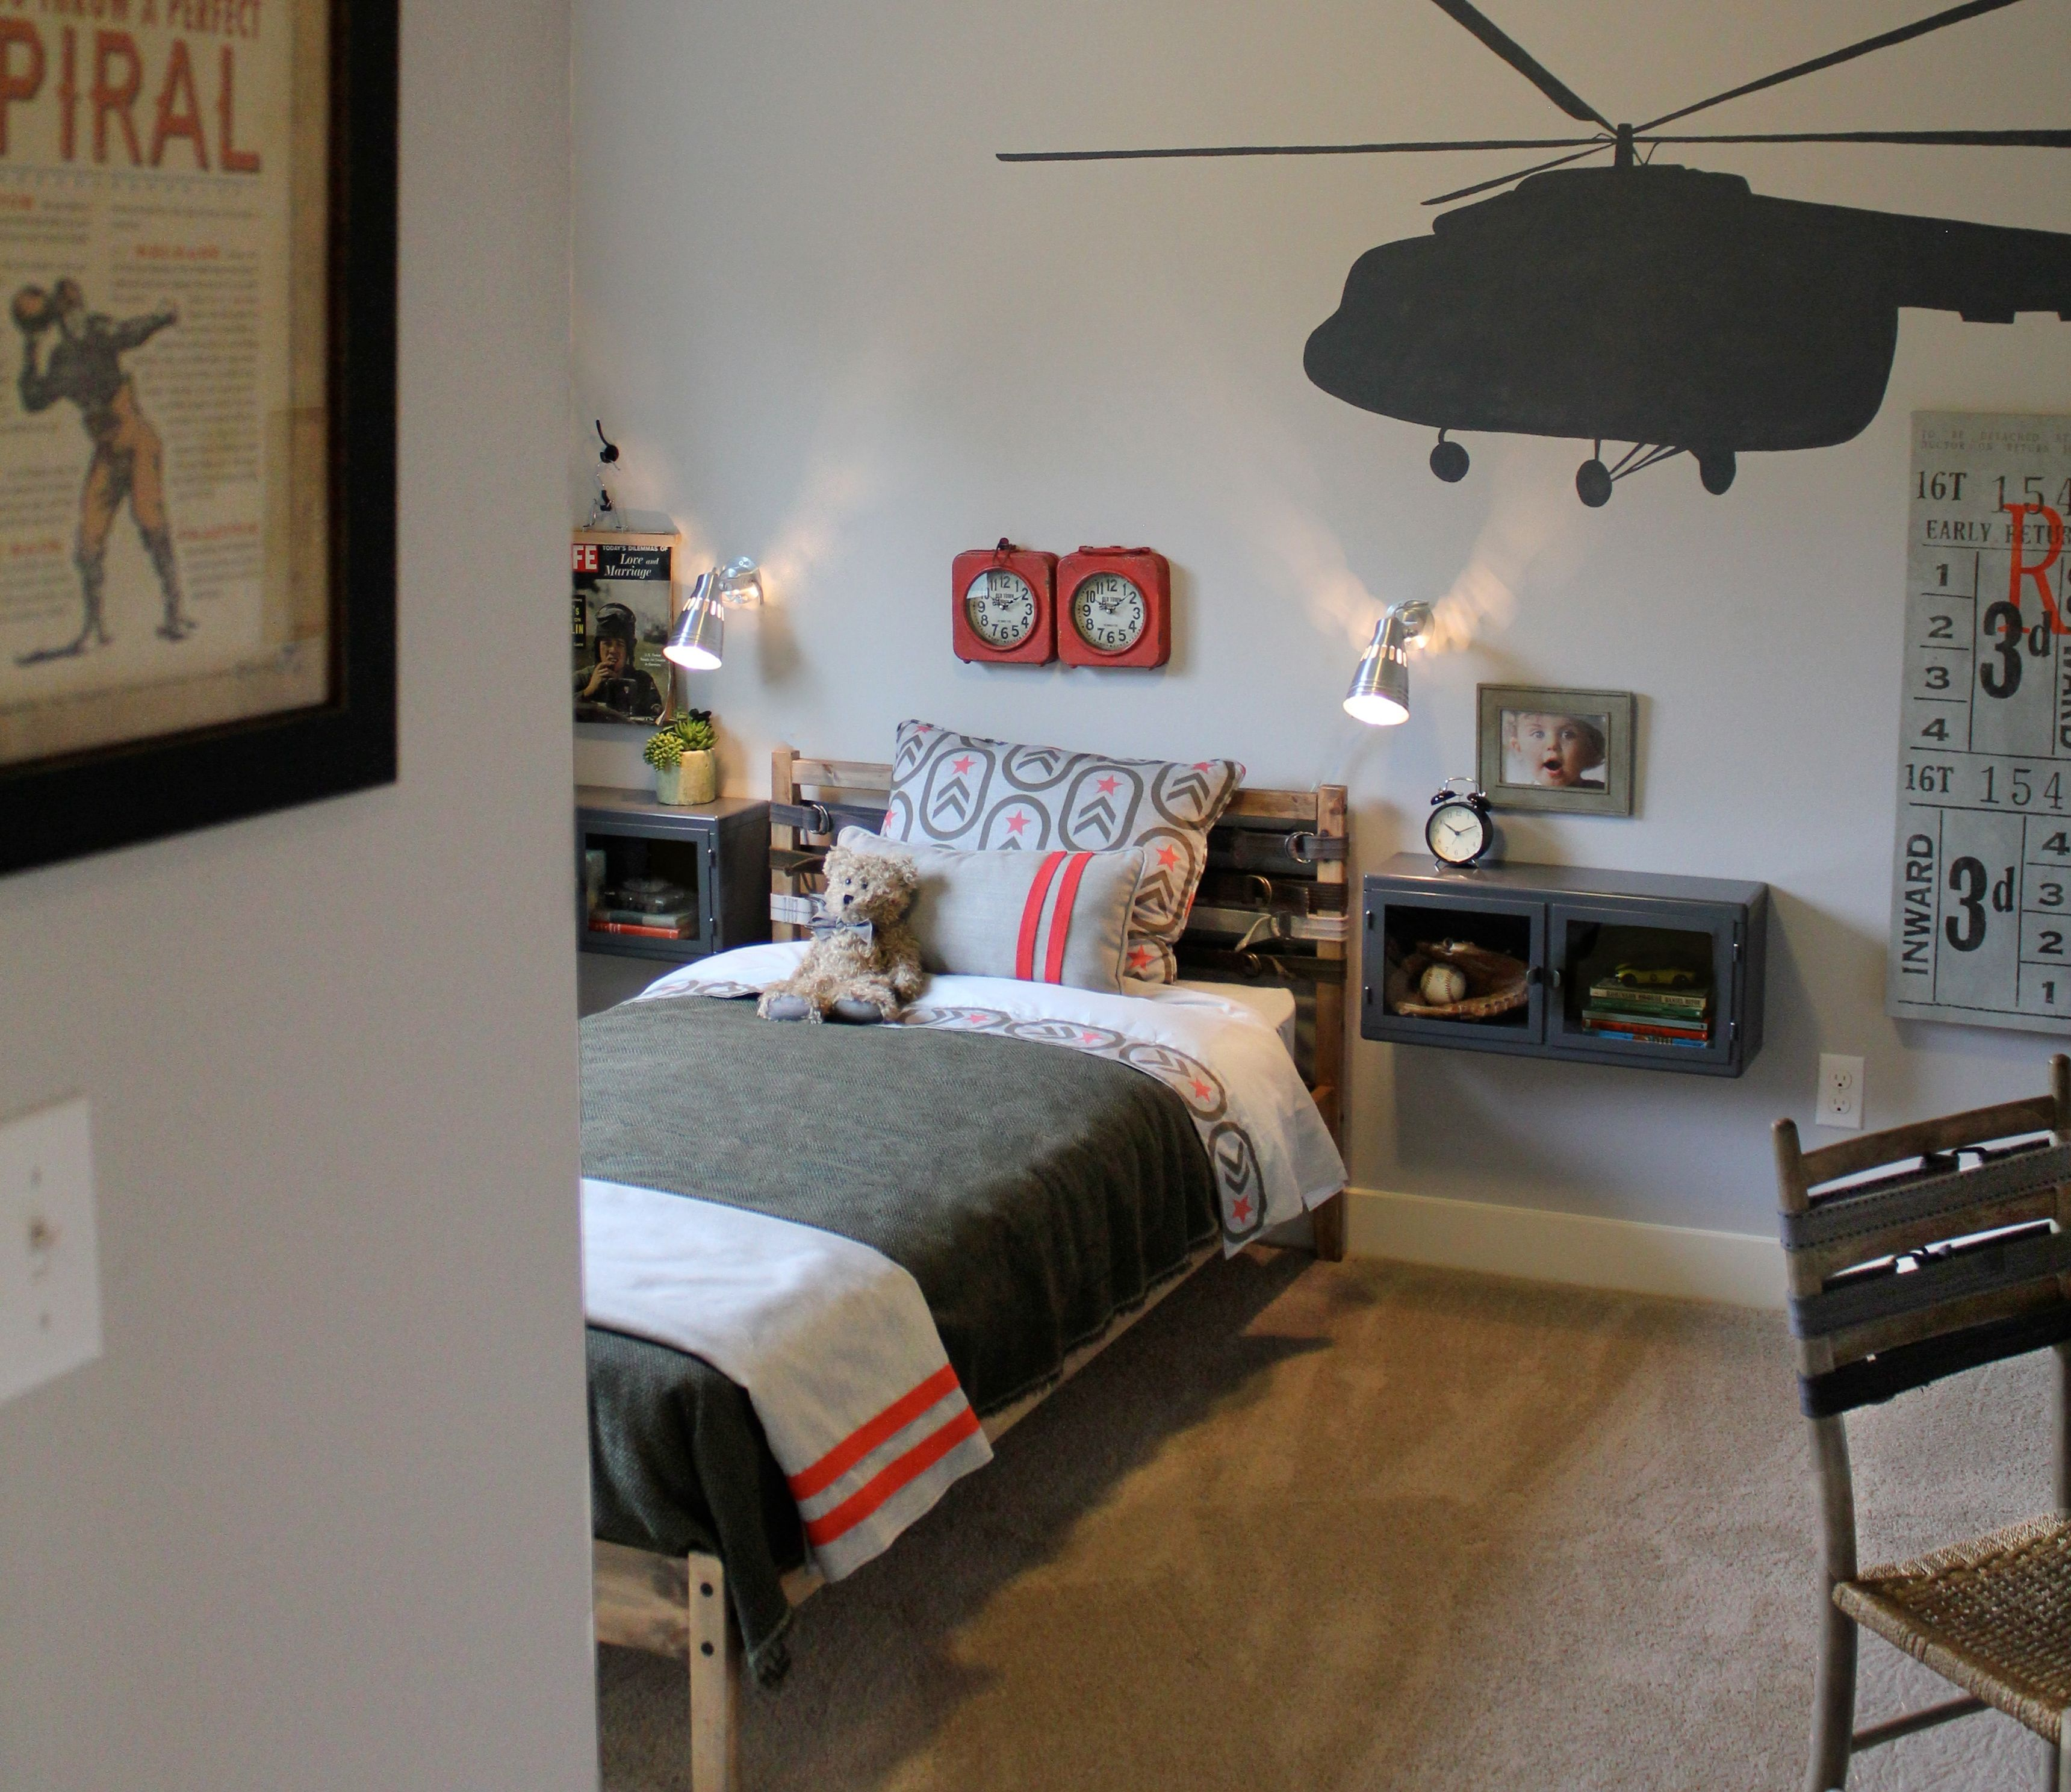 Latest Bedroom Colours 2015 Ikea Bedroom Youth Red Wall Decor Bedroom Cool Kids Bedroom Ideas For Girls: Military Themed Boys Room, Ikea Bed, Stained And Belts